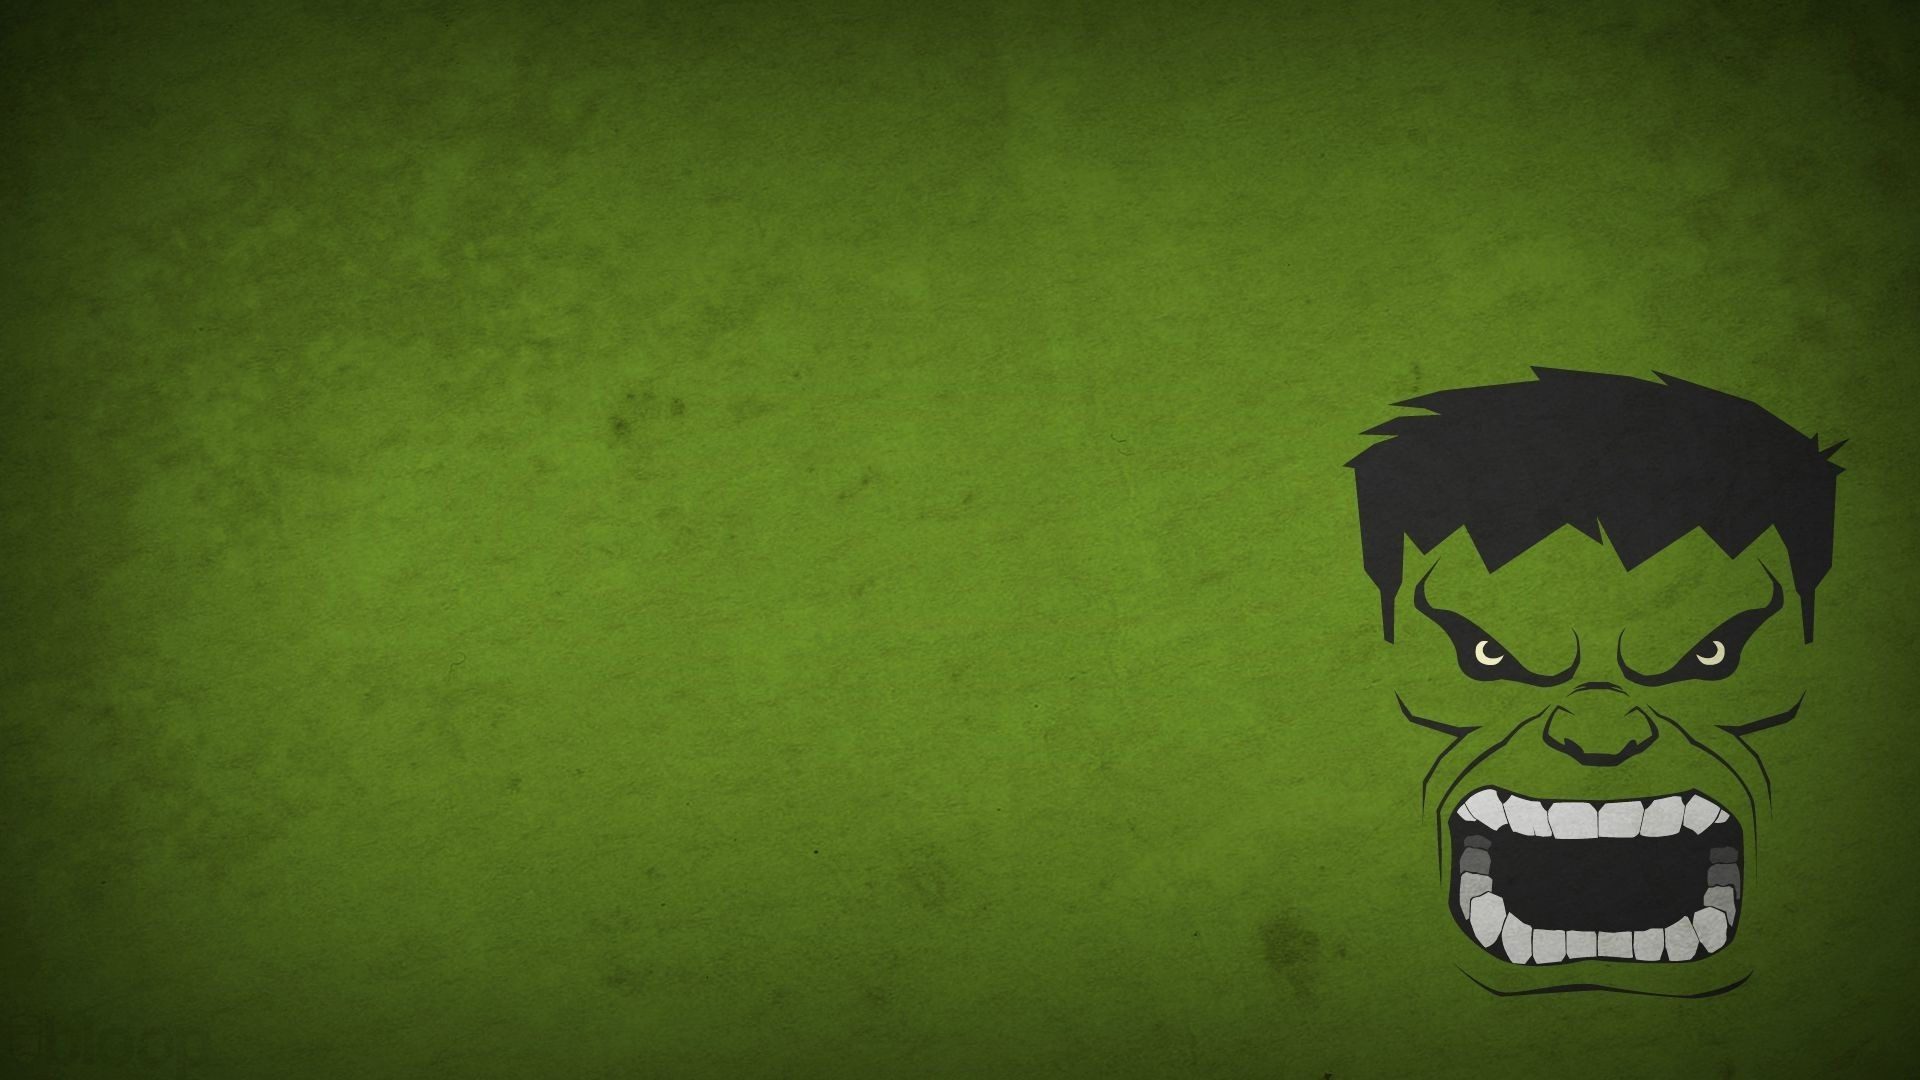 Great Wallpaper Marvel Minimalistic - character-marvel-comics-blo0p-green-background-minimalistic-1920x1080-wallpaper  Perfect Image Reference_891298.jpg